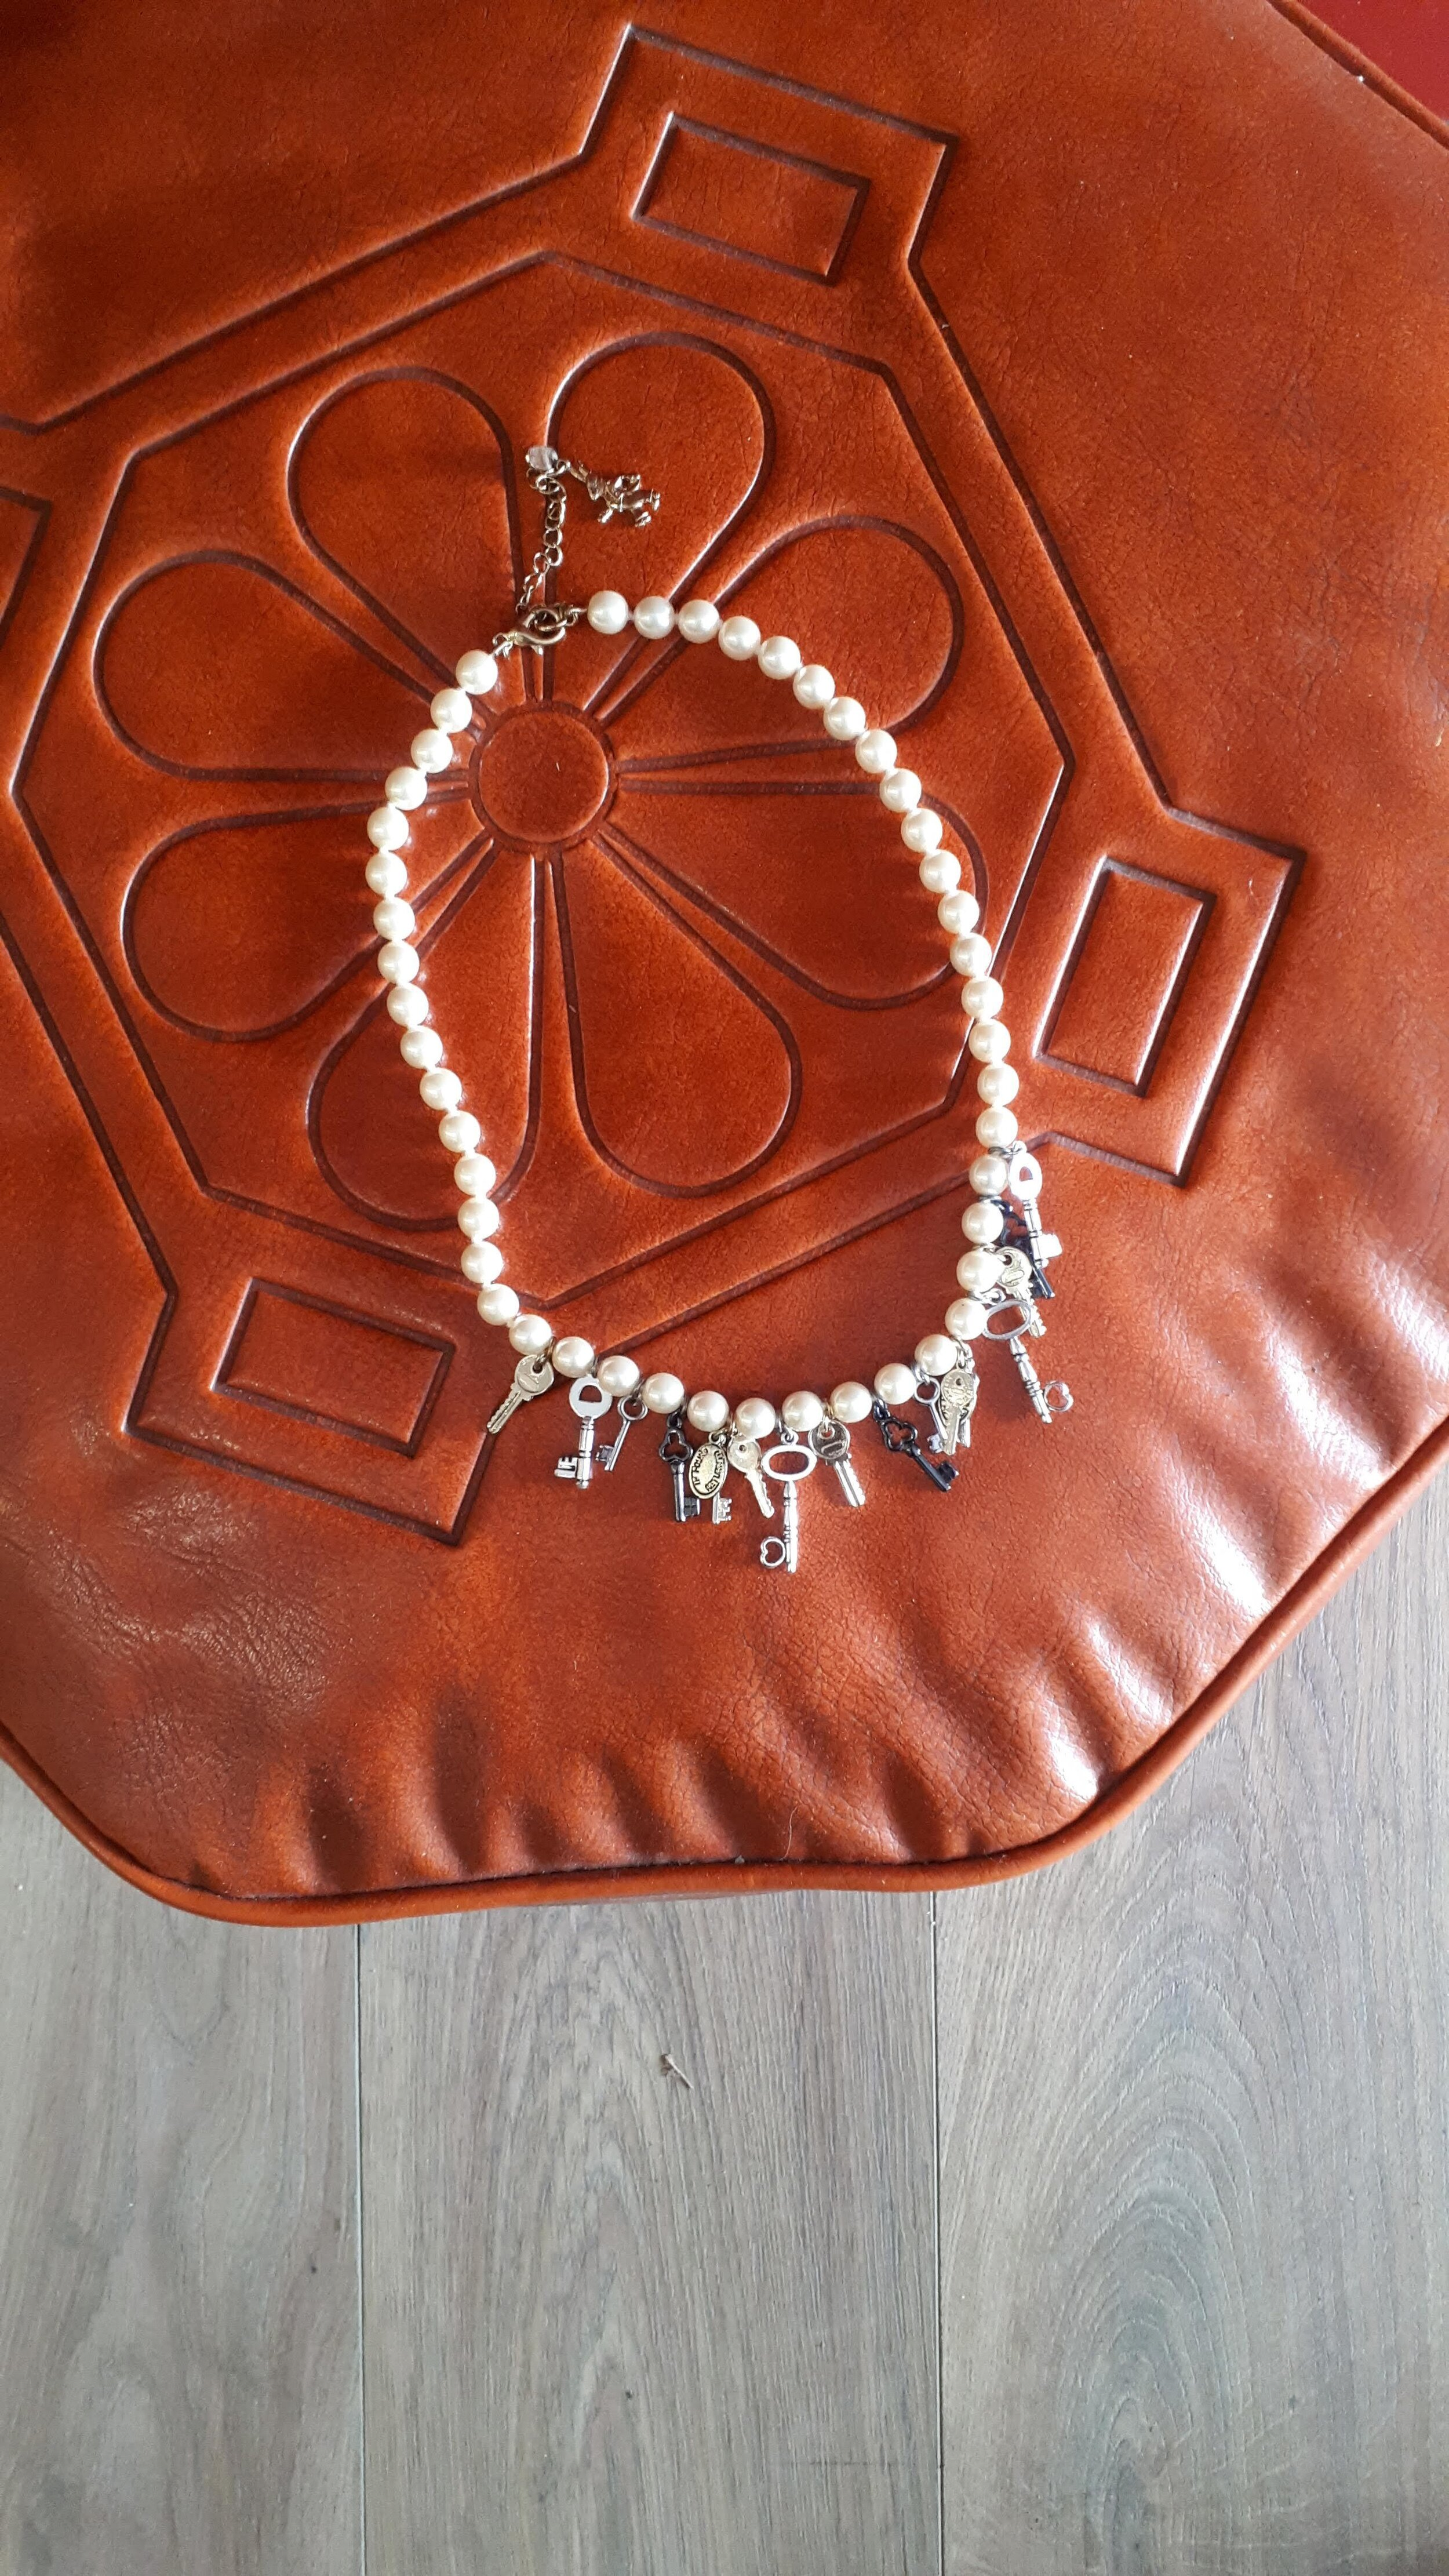 Paul Smith necklace, $48